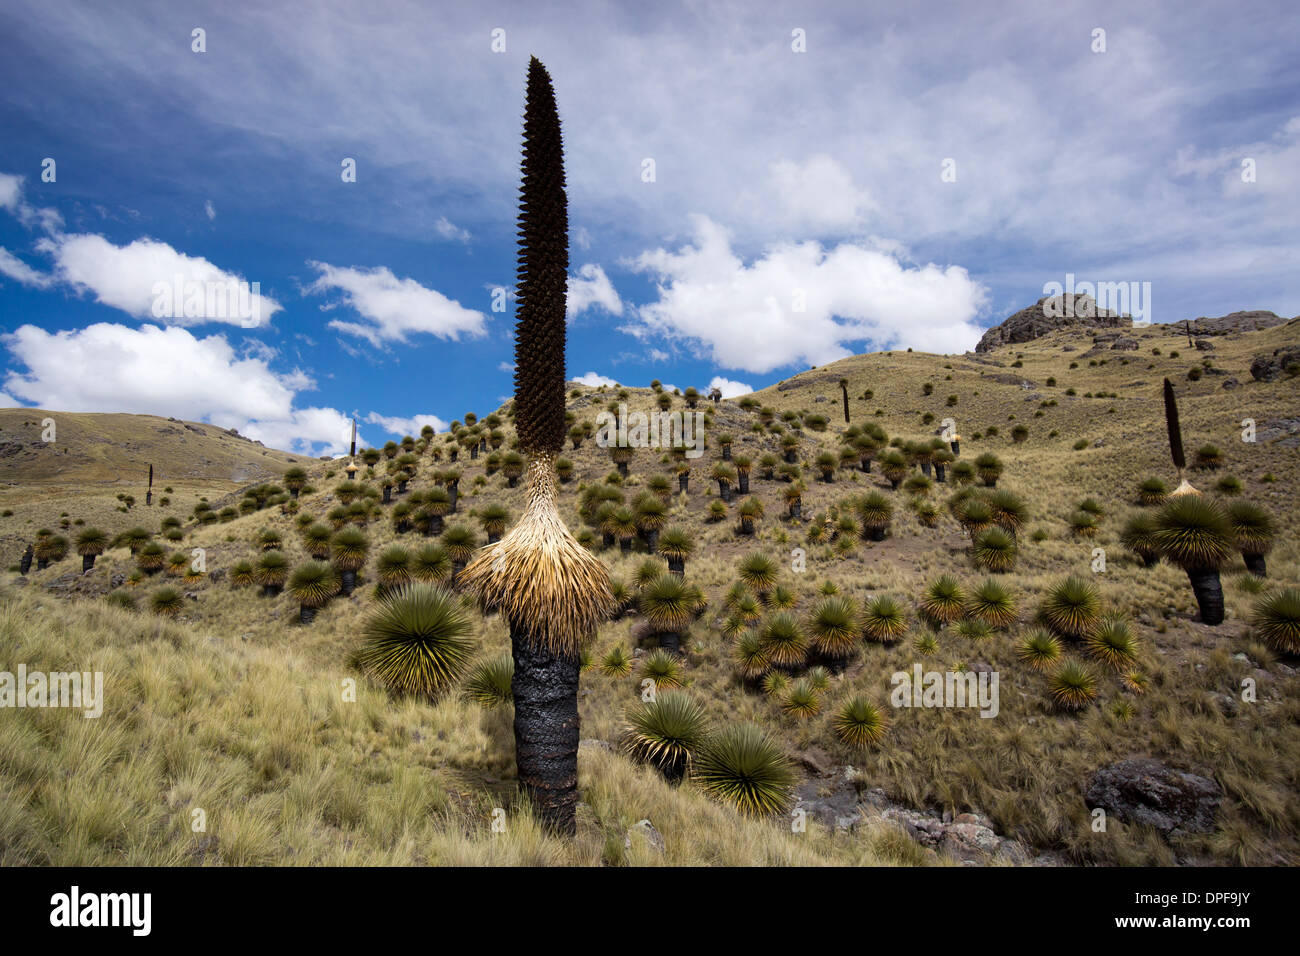 Puya raimondii tree (the Queen of the Andes tree), after seeding, Peru, South America Stock Photo